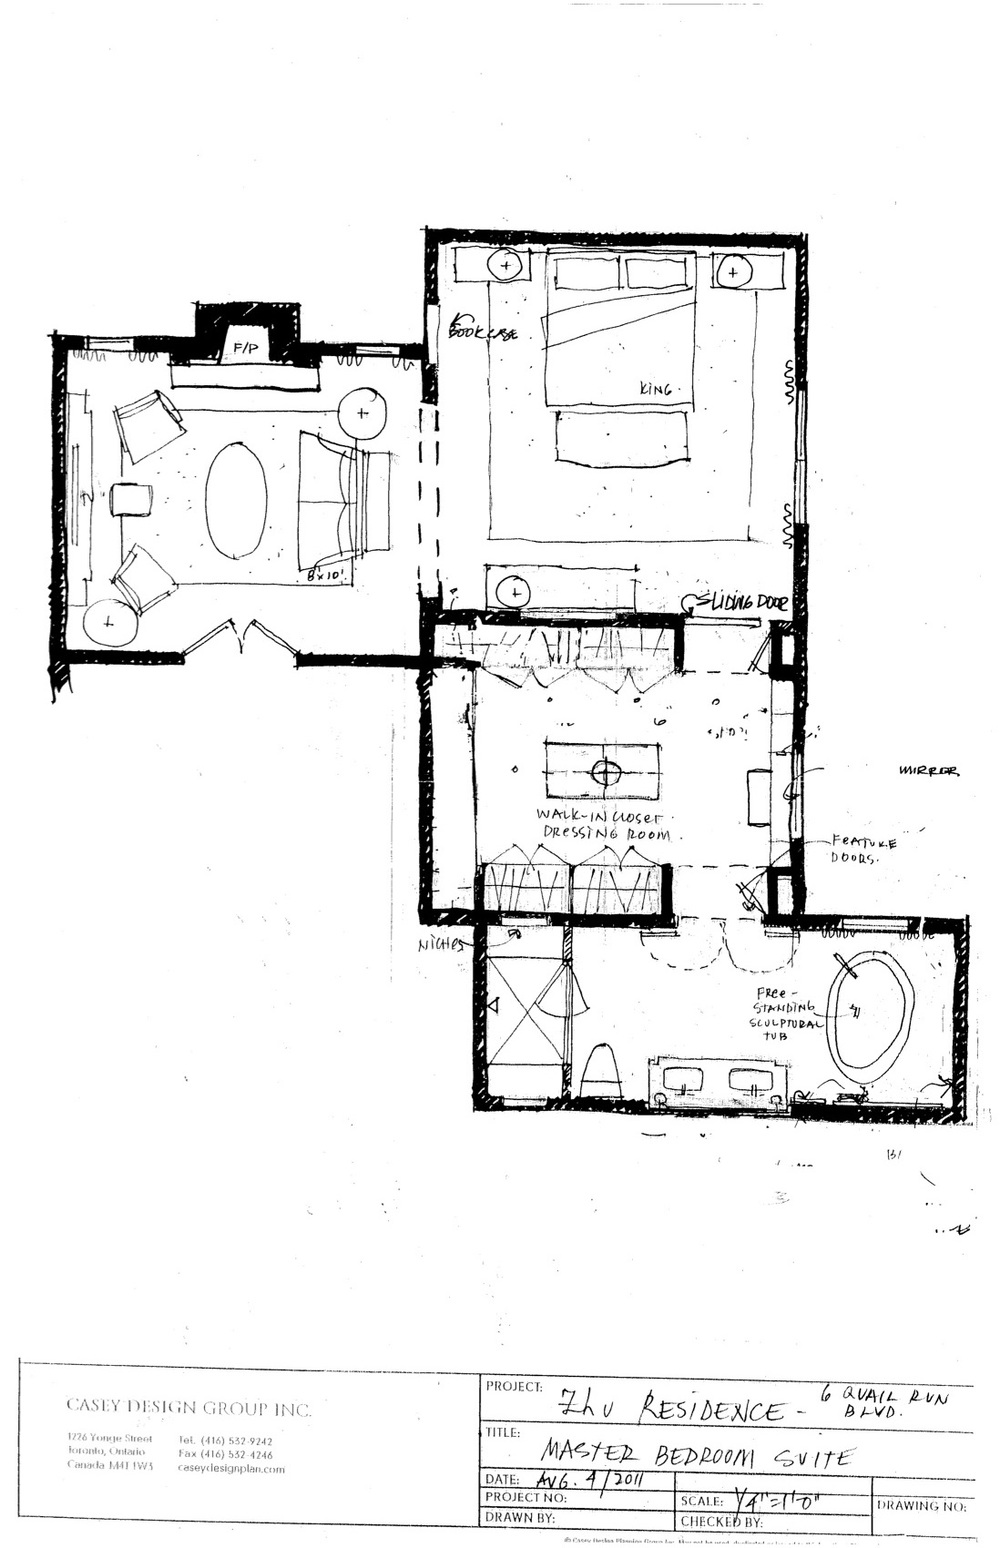 Zhu Residence New Casey Design Master Ensuite Floor Plan 002.jpg